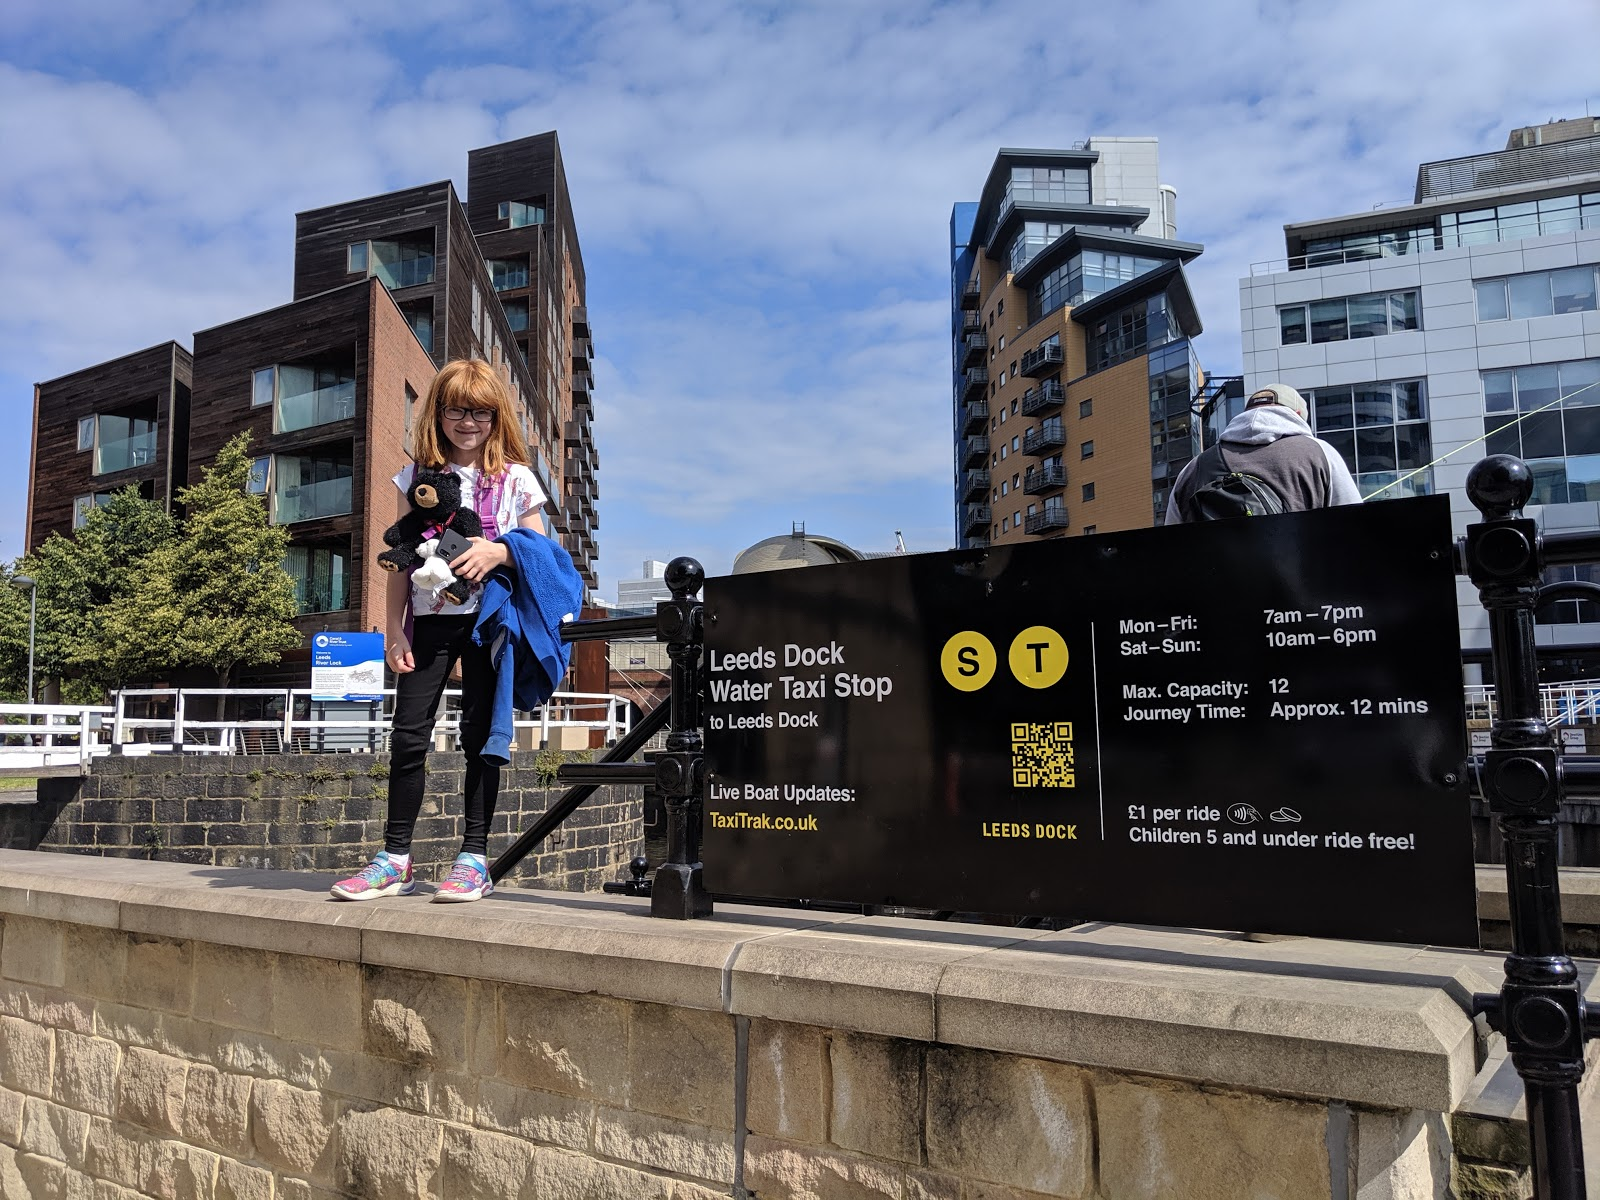 A Short Break in Leeds with Holidays by National Express  - Leeds Water Taxi Pick Up Point